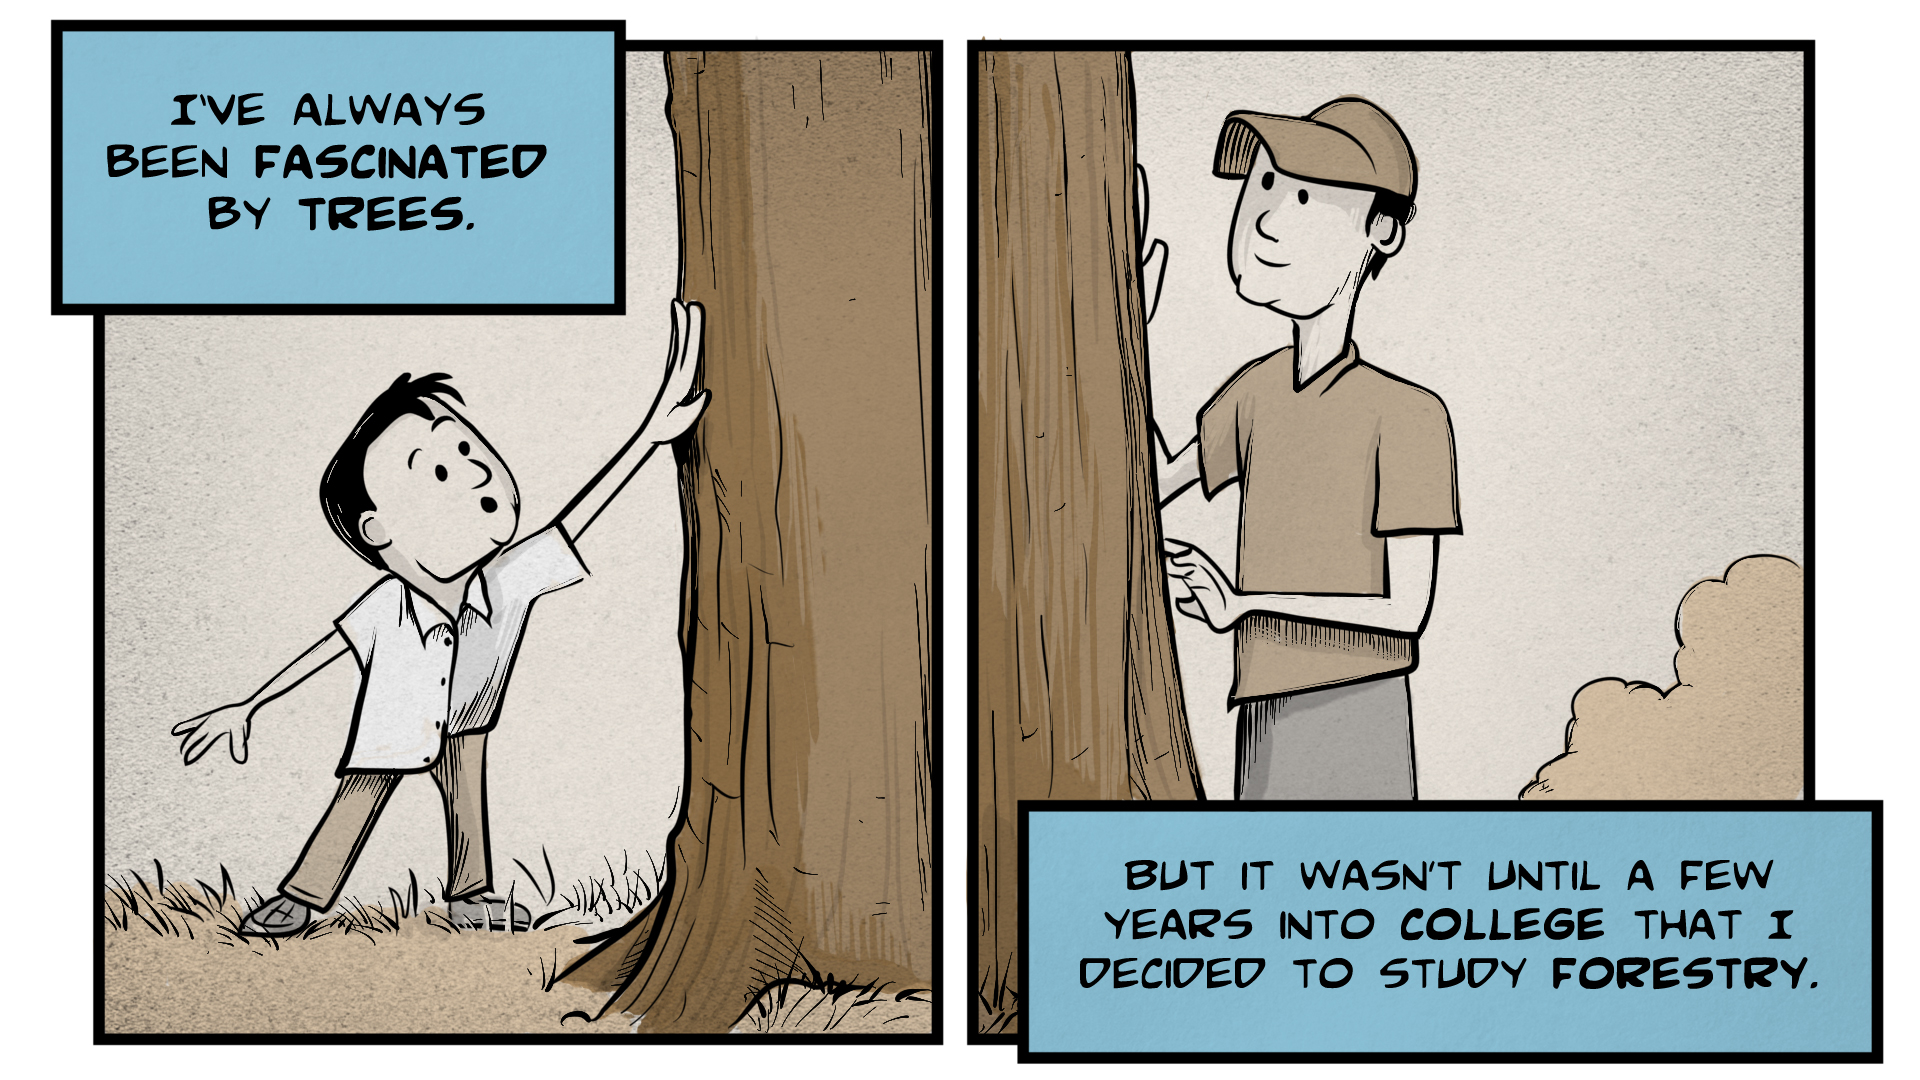 Right frame shows Danny as a young man wearing a baseball cap, touching a tree trunk.